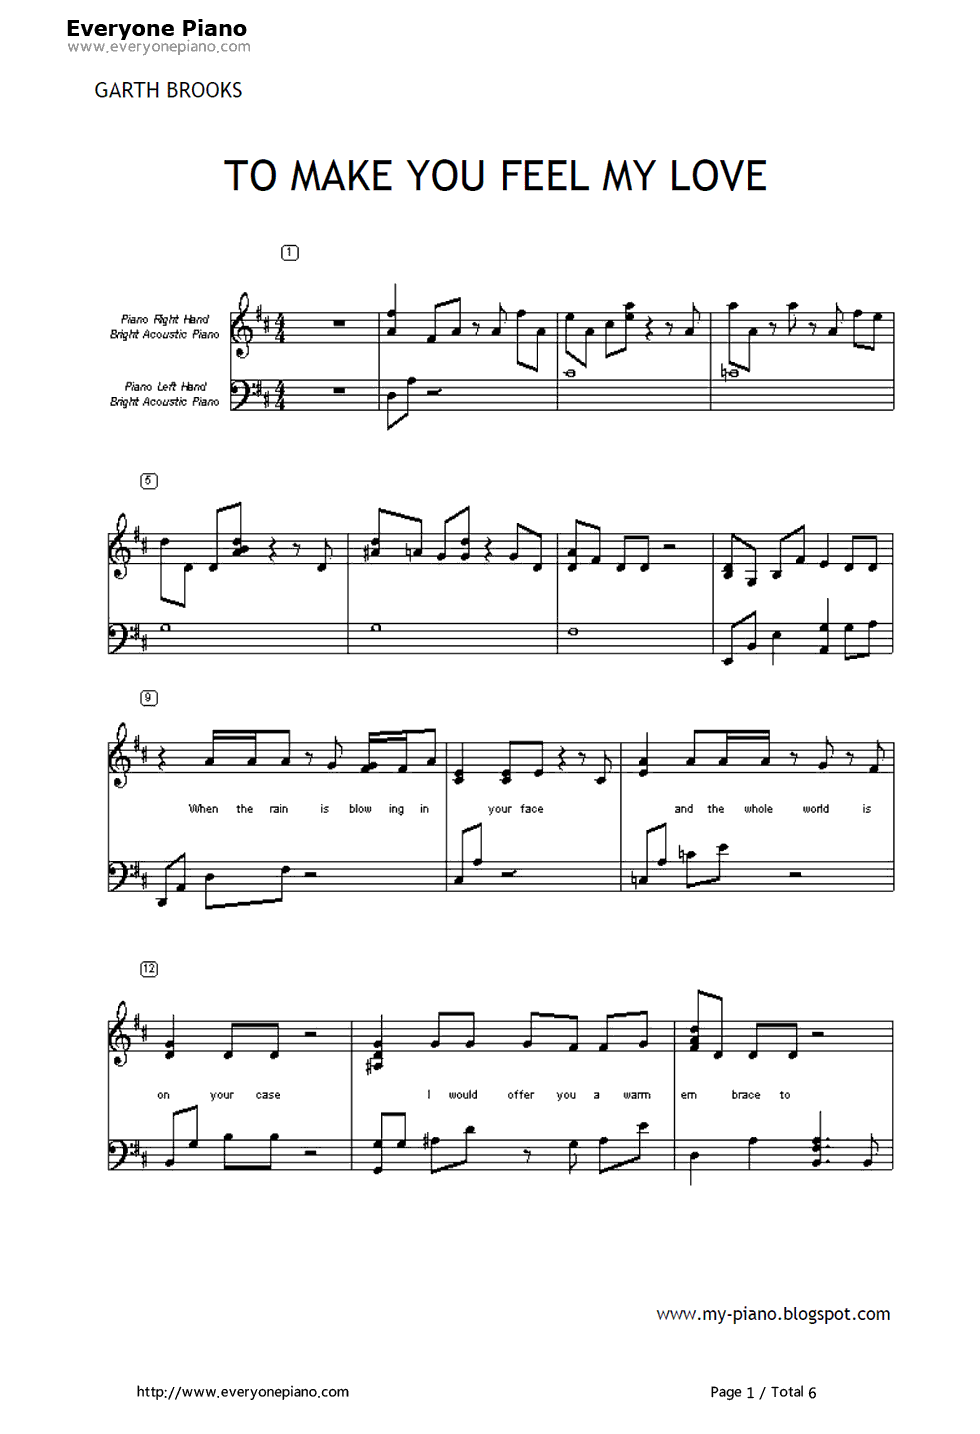 To Make You Feel My Love-Garth Brooks Stave Preview 1 | Music | Pinterest | Garth brooks. Pianos and Sheet music